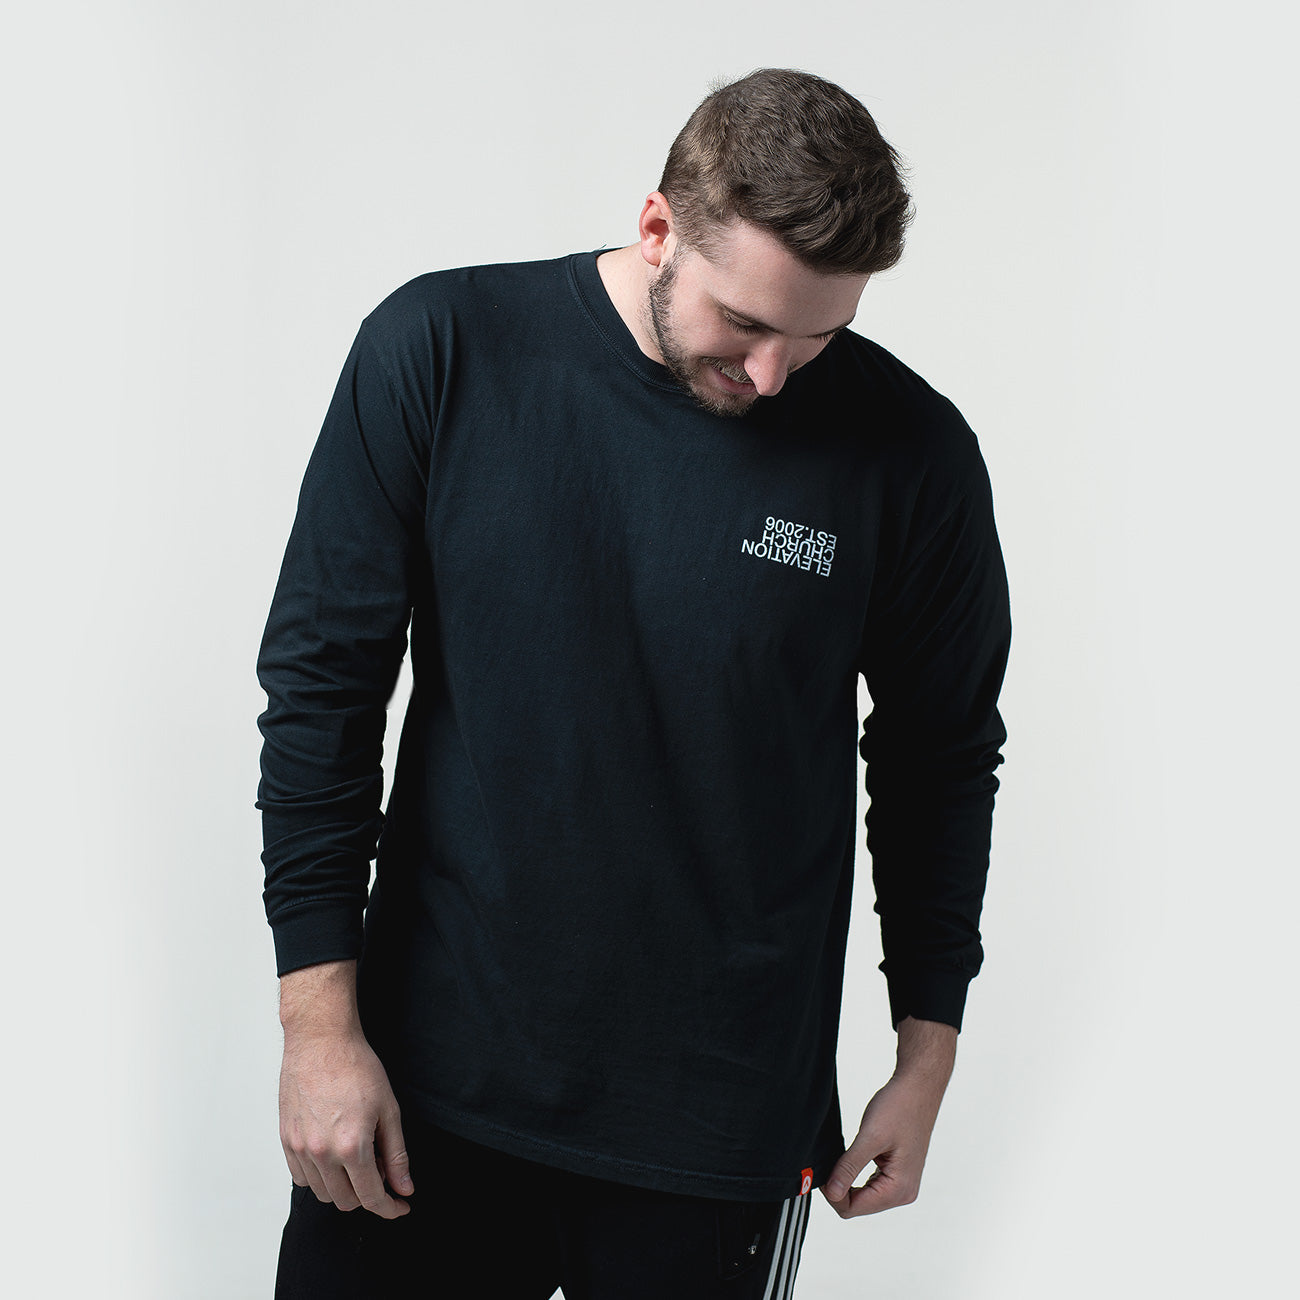 'See What God Can Do Through You - Elevation Church' long sleeve tee